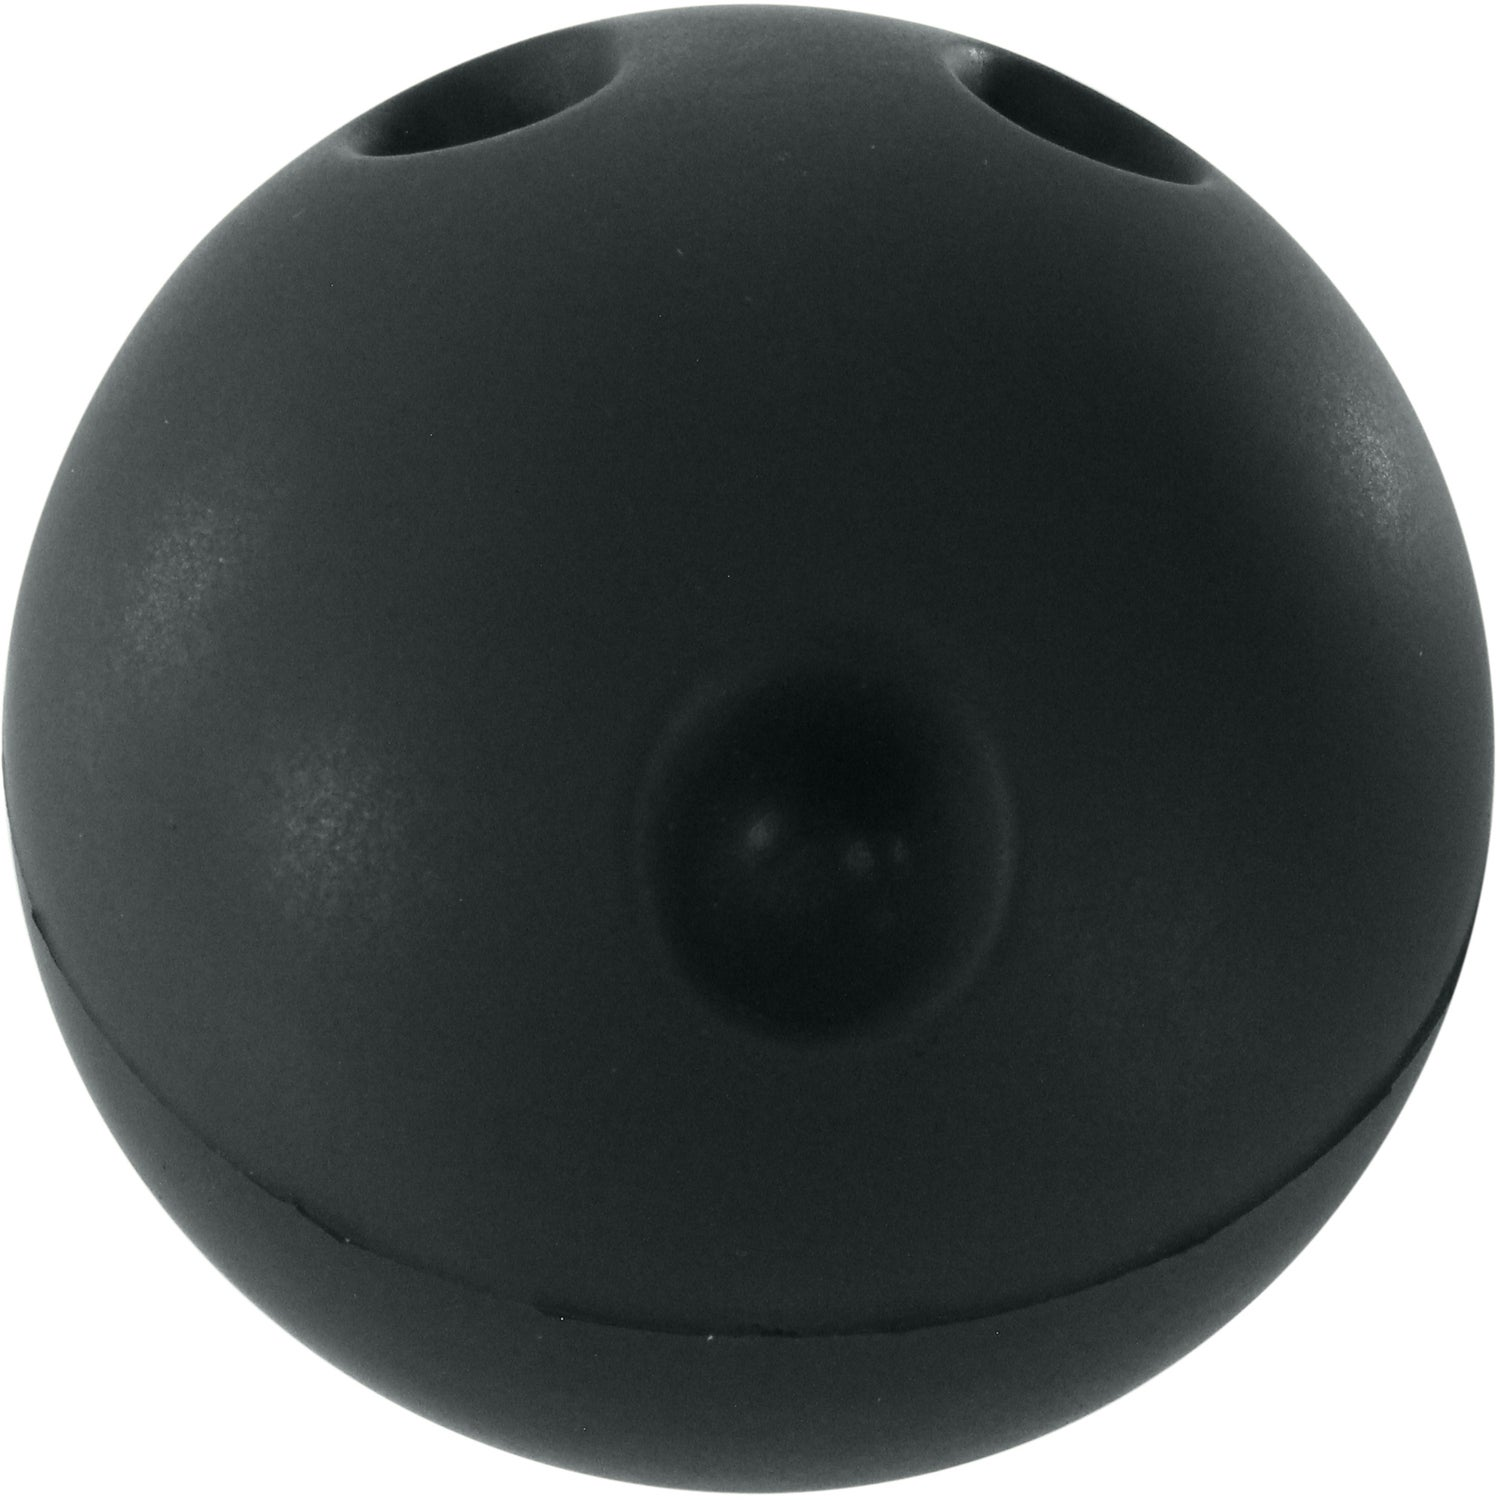 Bowling ball stress custom balls ea